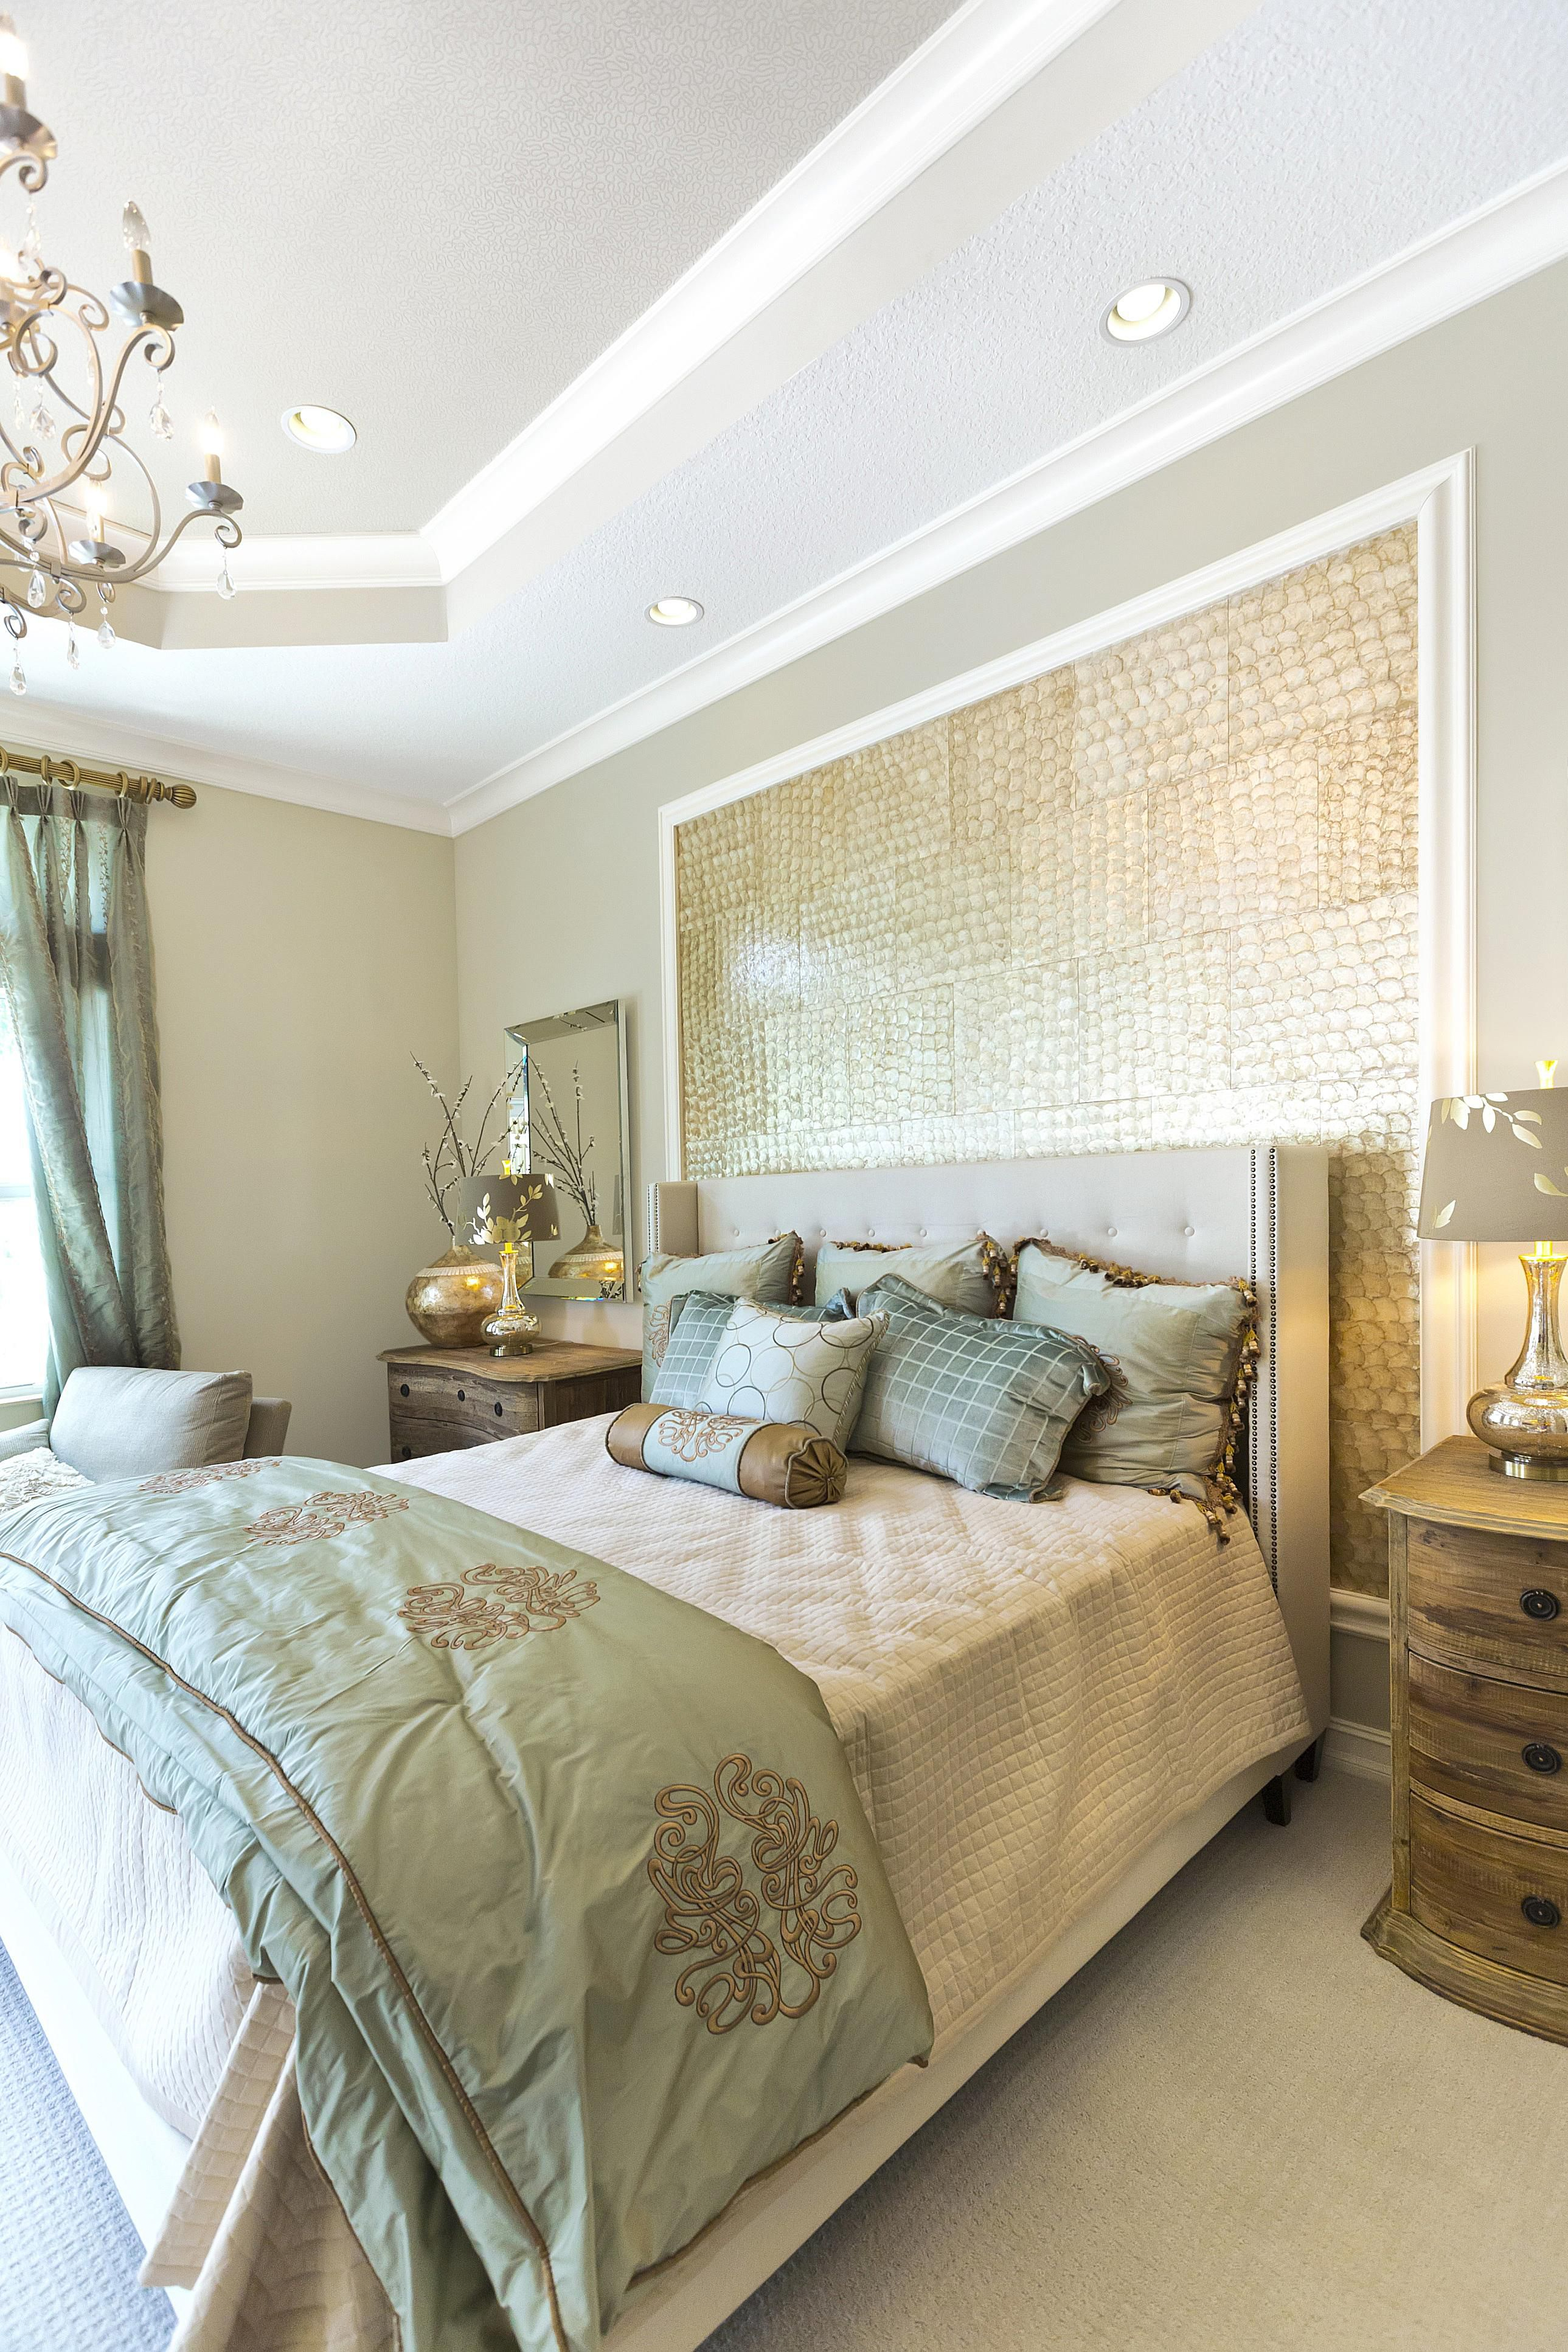 for a picture perfect bedroom learn to make your bed like a pro